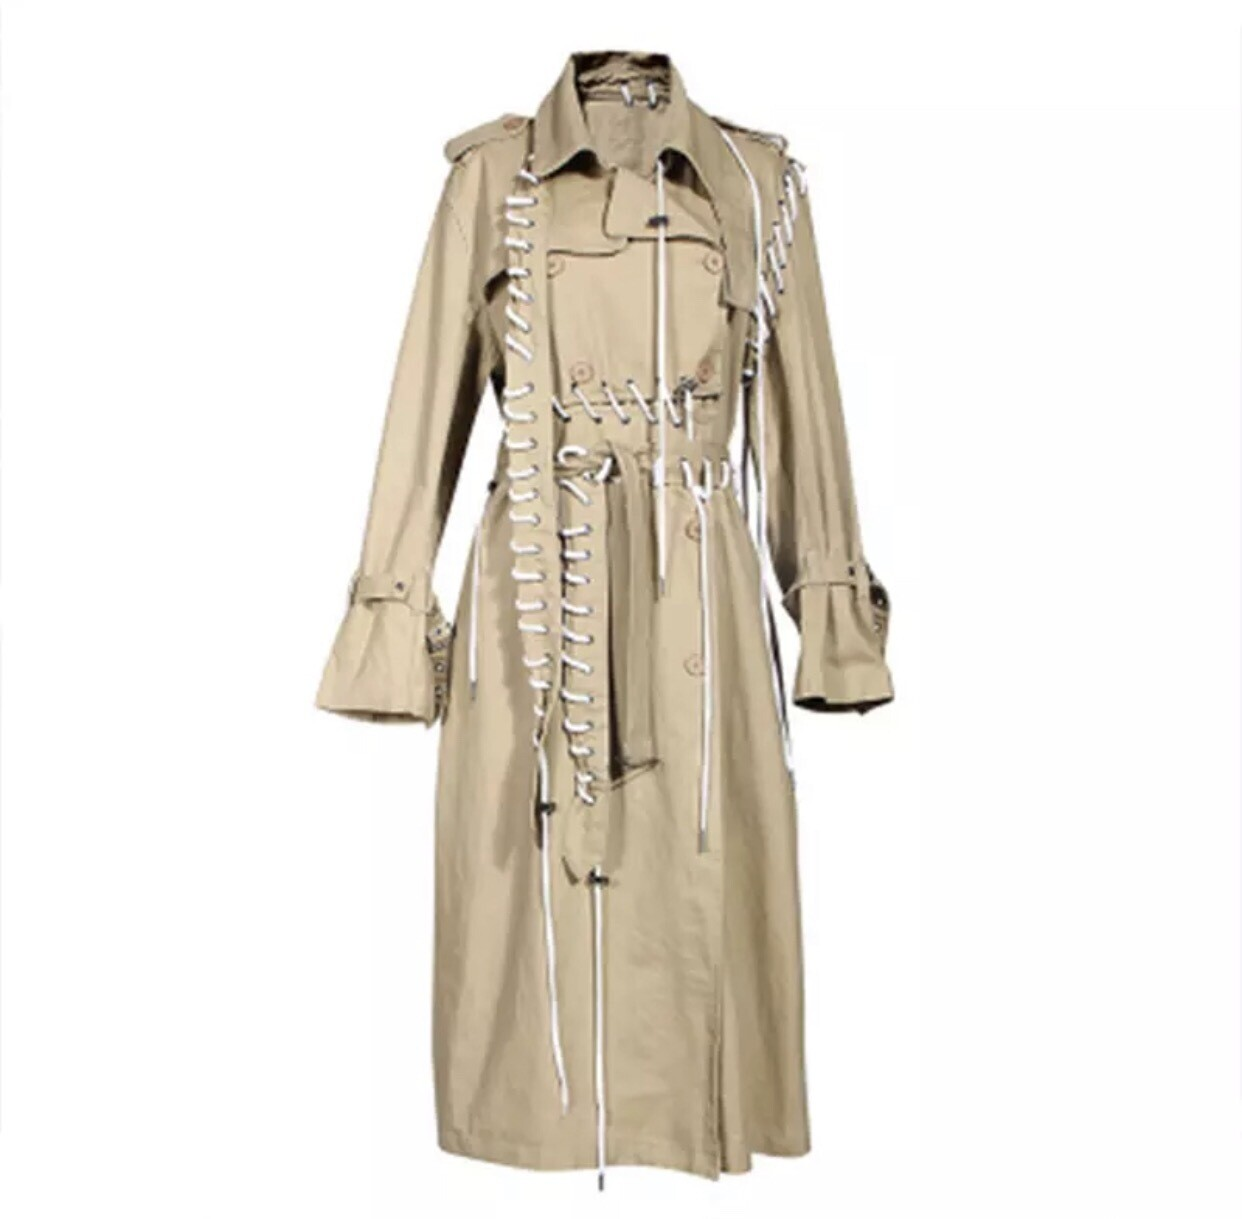 Laced Trench Coat Preorder